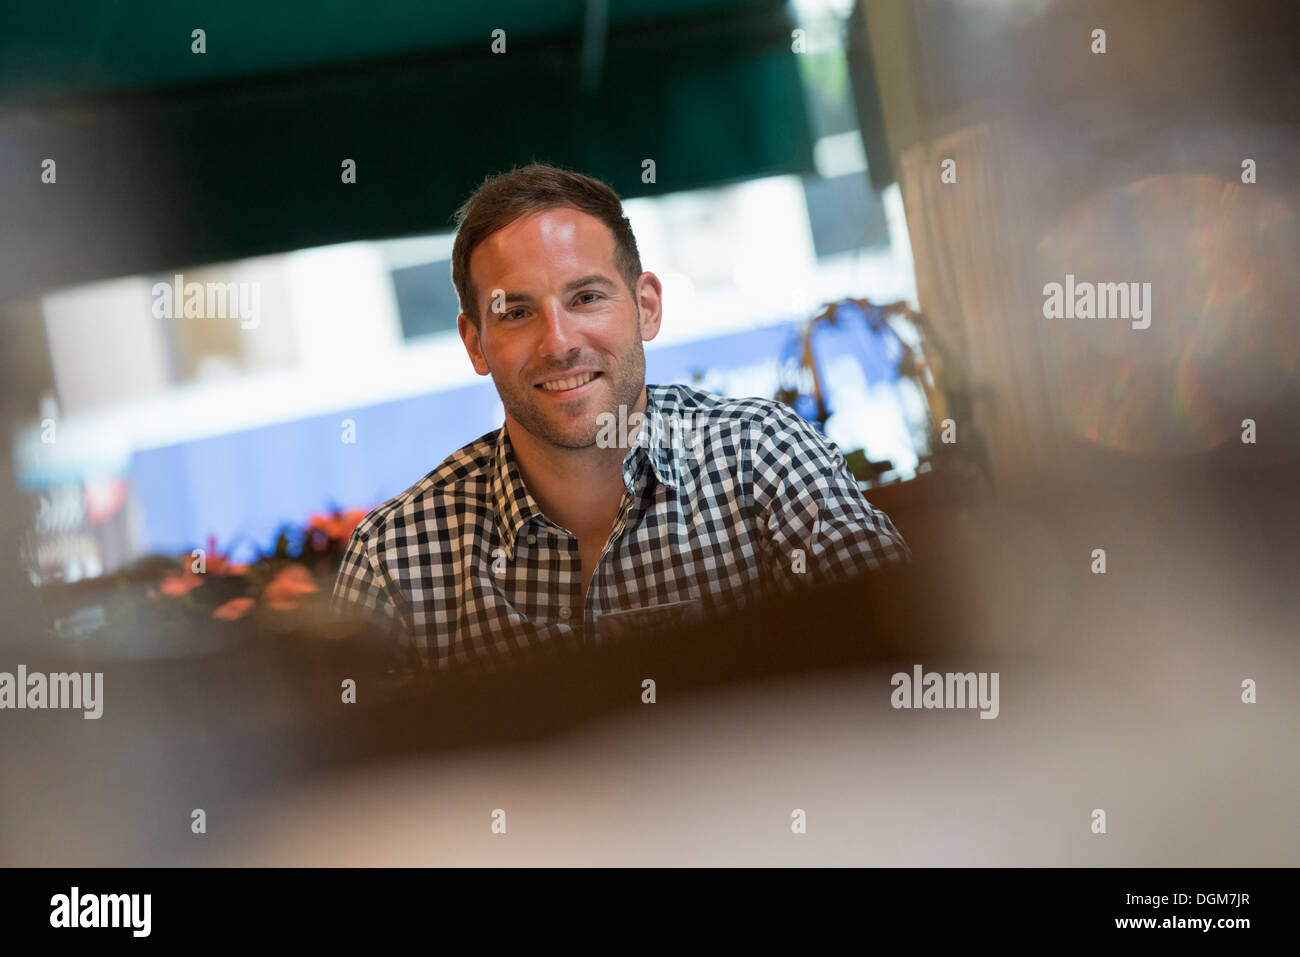 Business people. A man seated at a table in a bar or cafe. - Stock Image